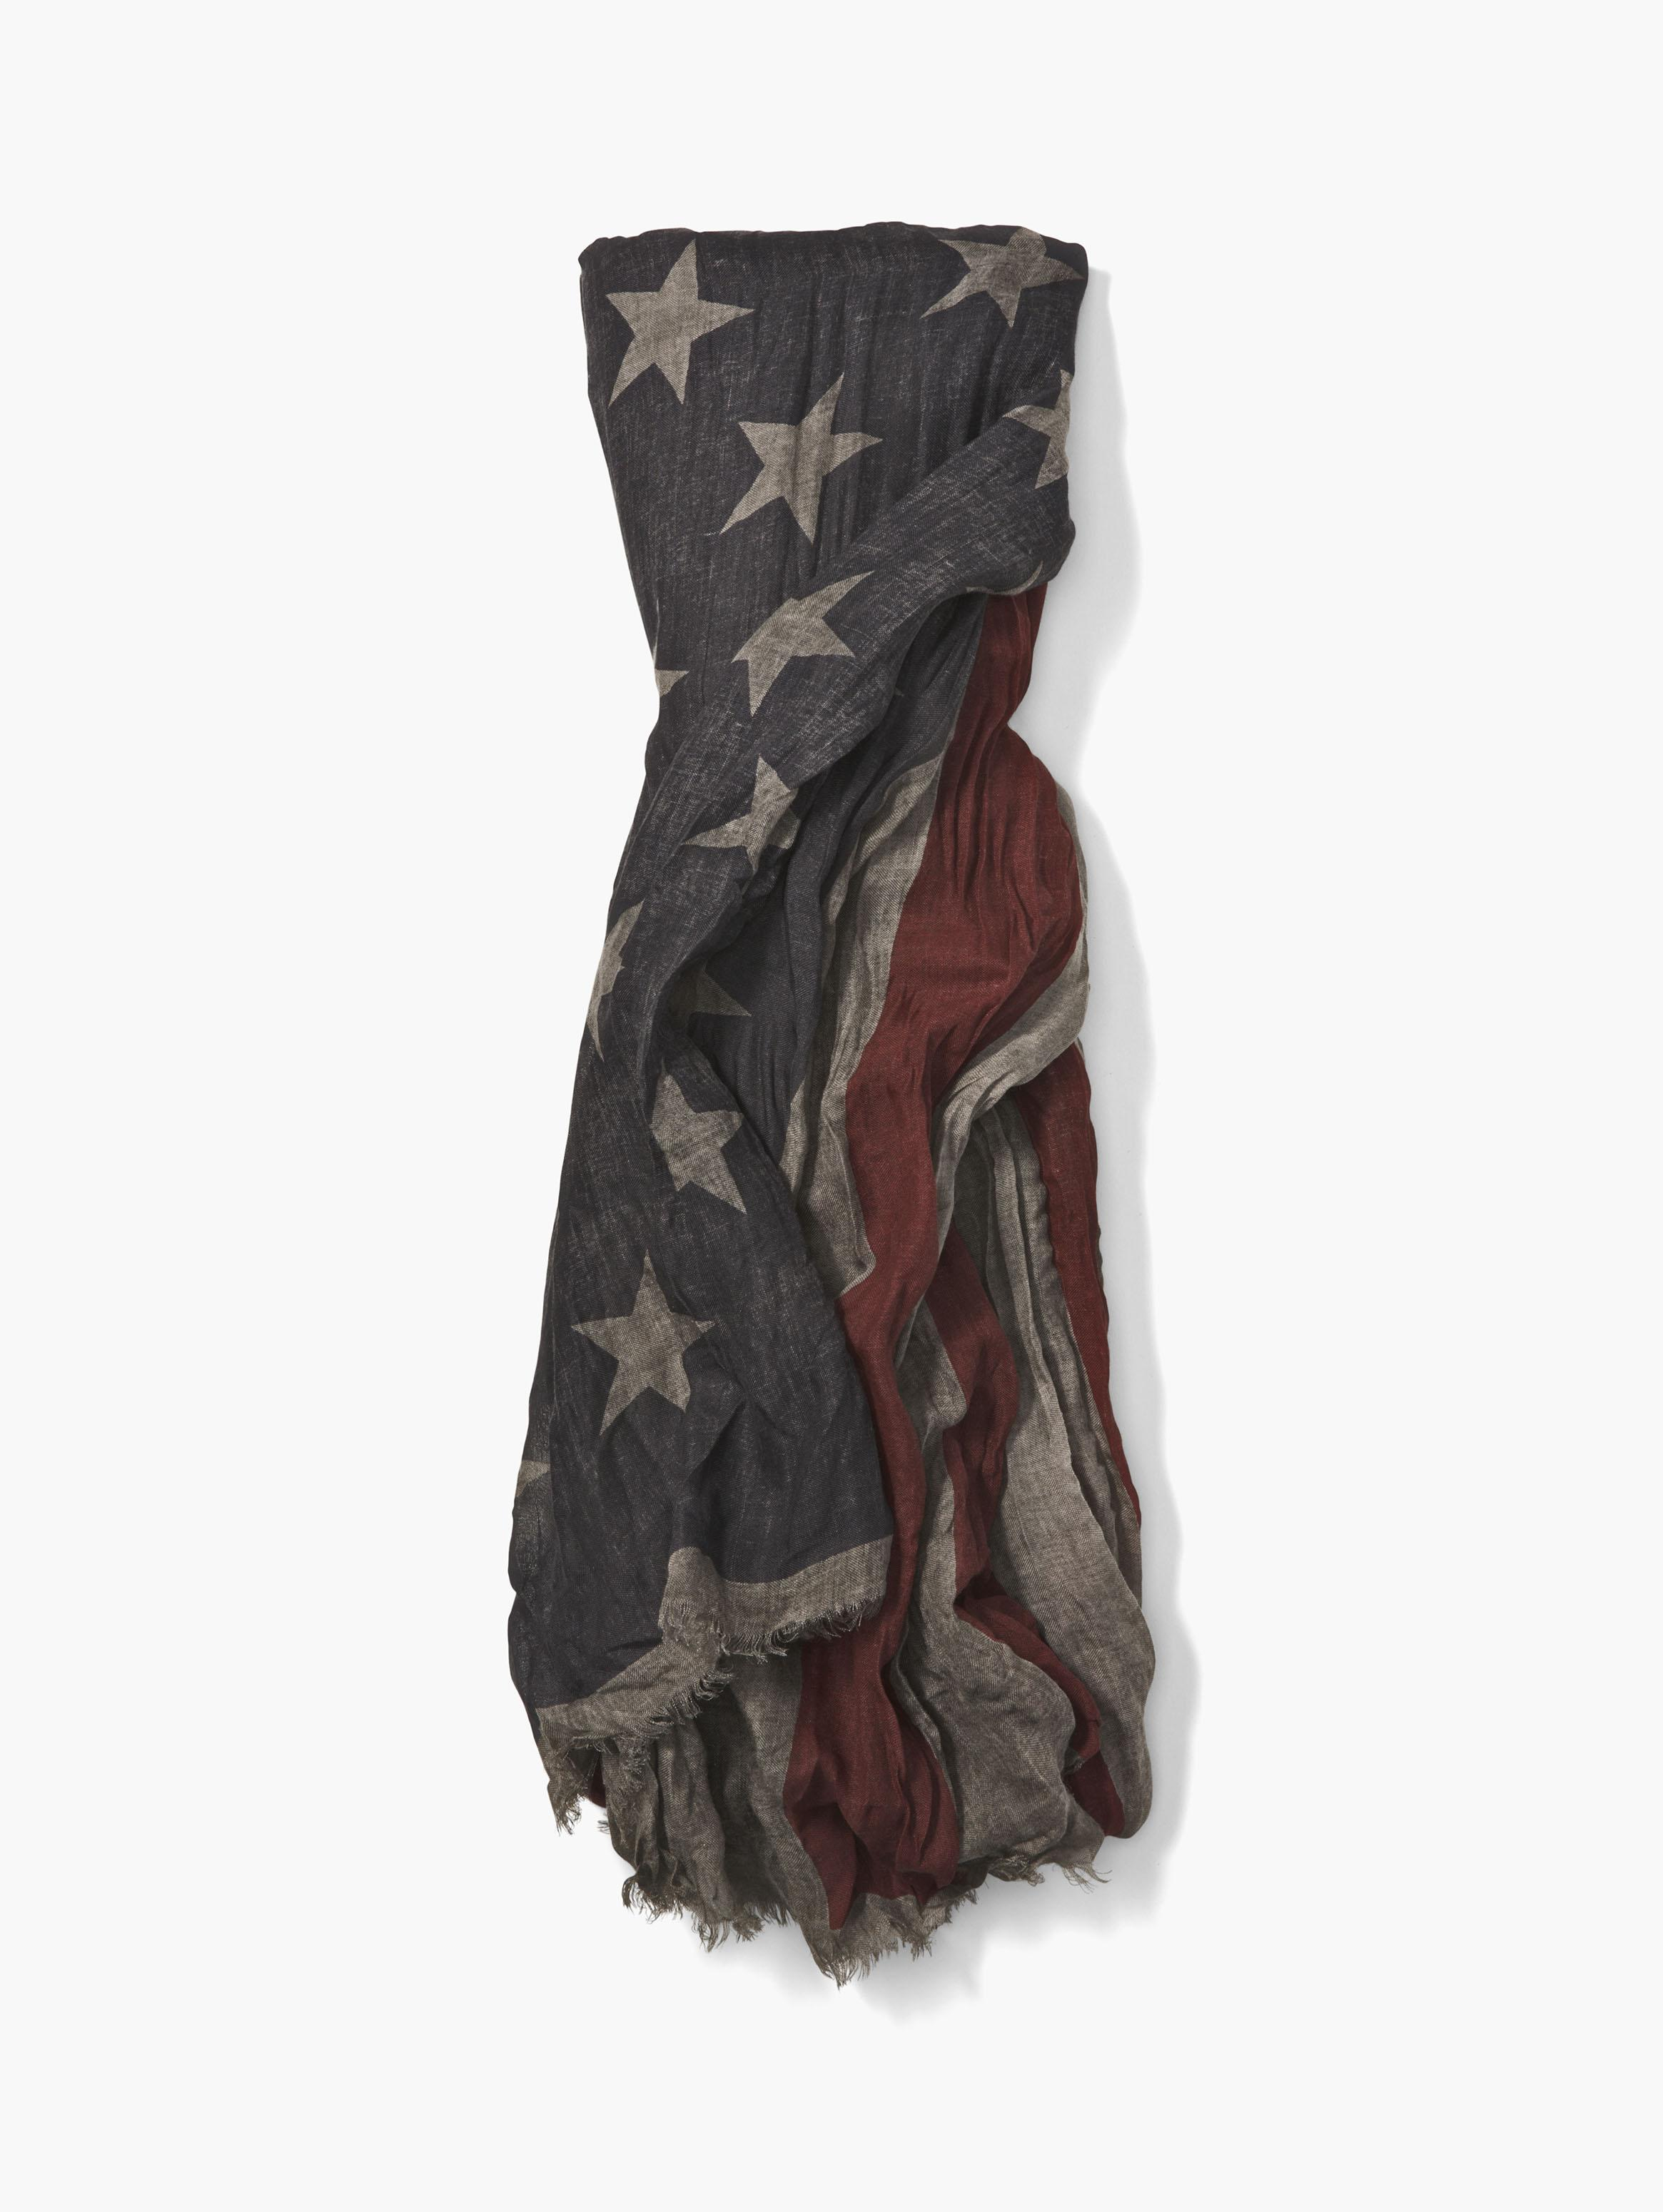 Antique Stars And Stripes Scarf